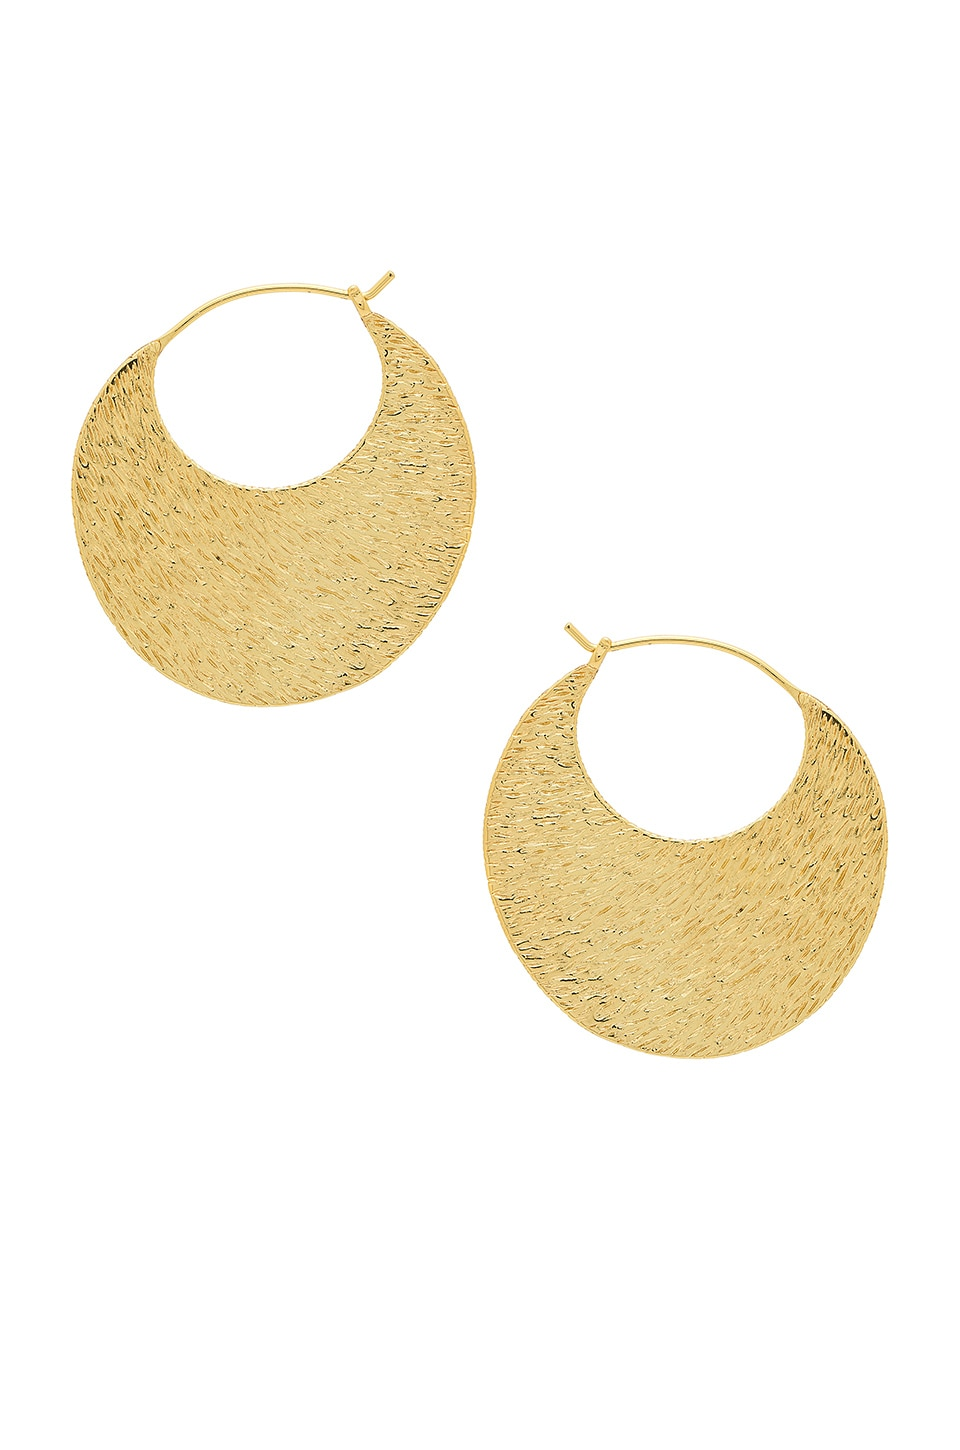 gorjana Rae Profile Hoops in Gold